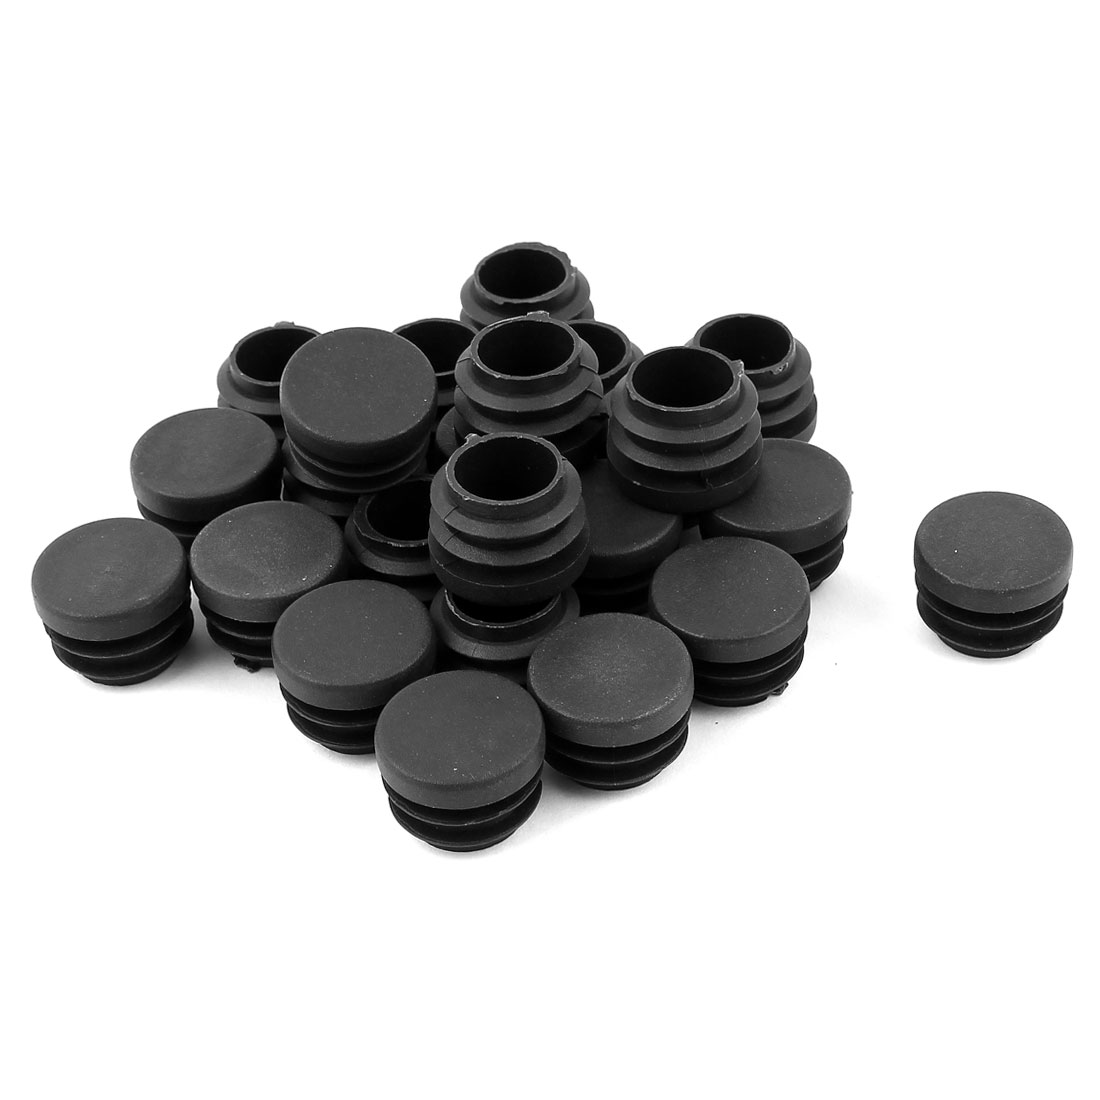 24 Pcs Black Plastic 25mm Dia Round Blanking End Caps Ribbed Tubing Inserts